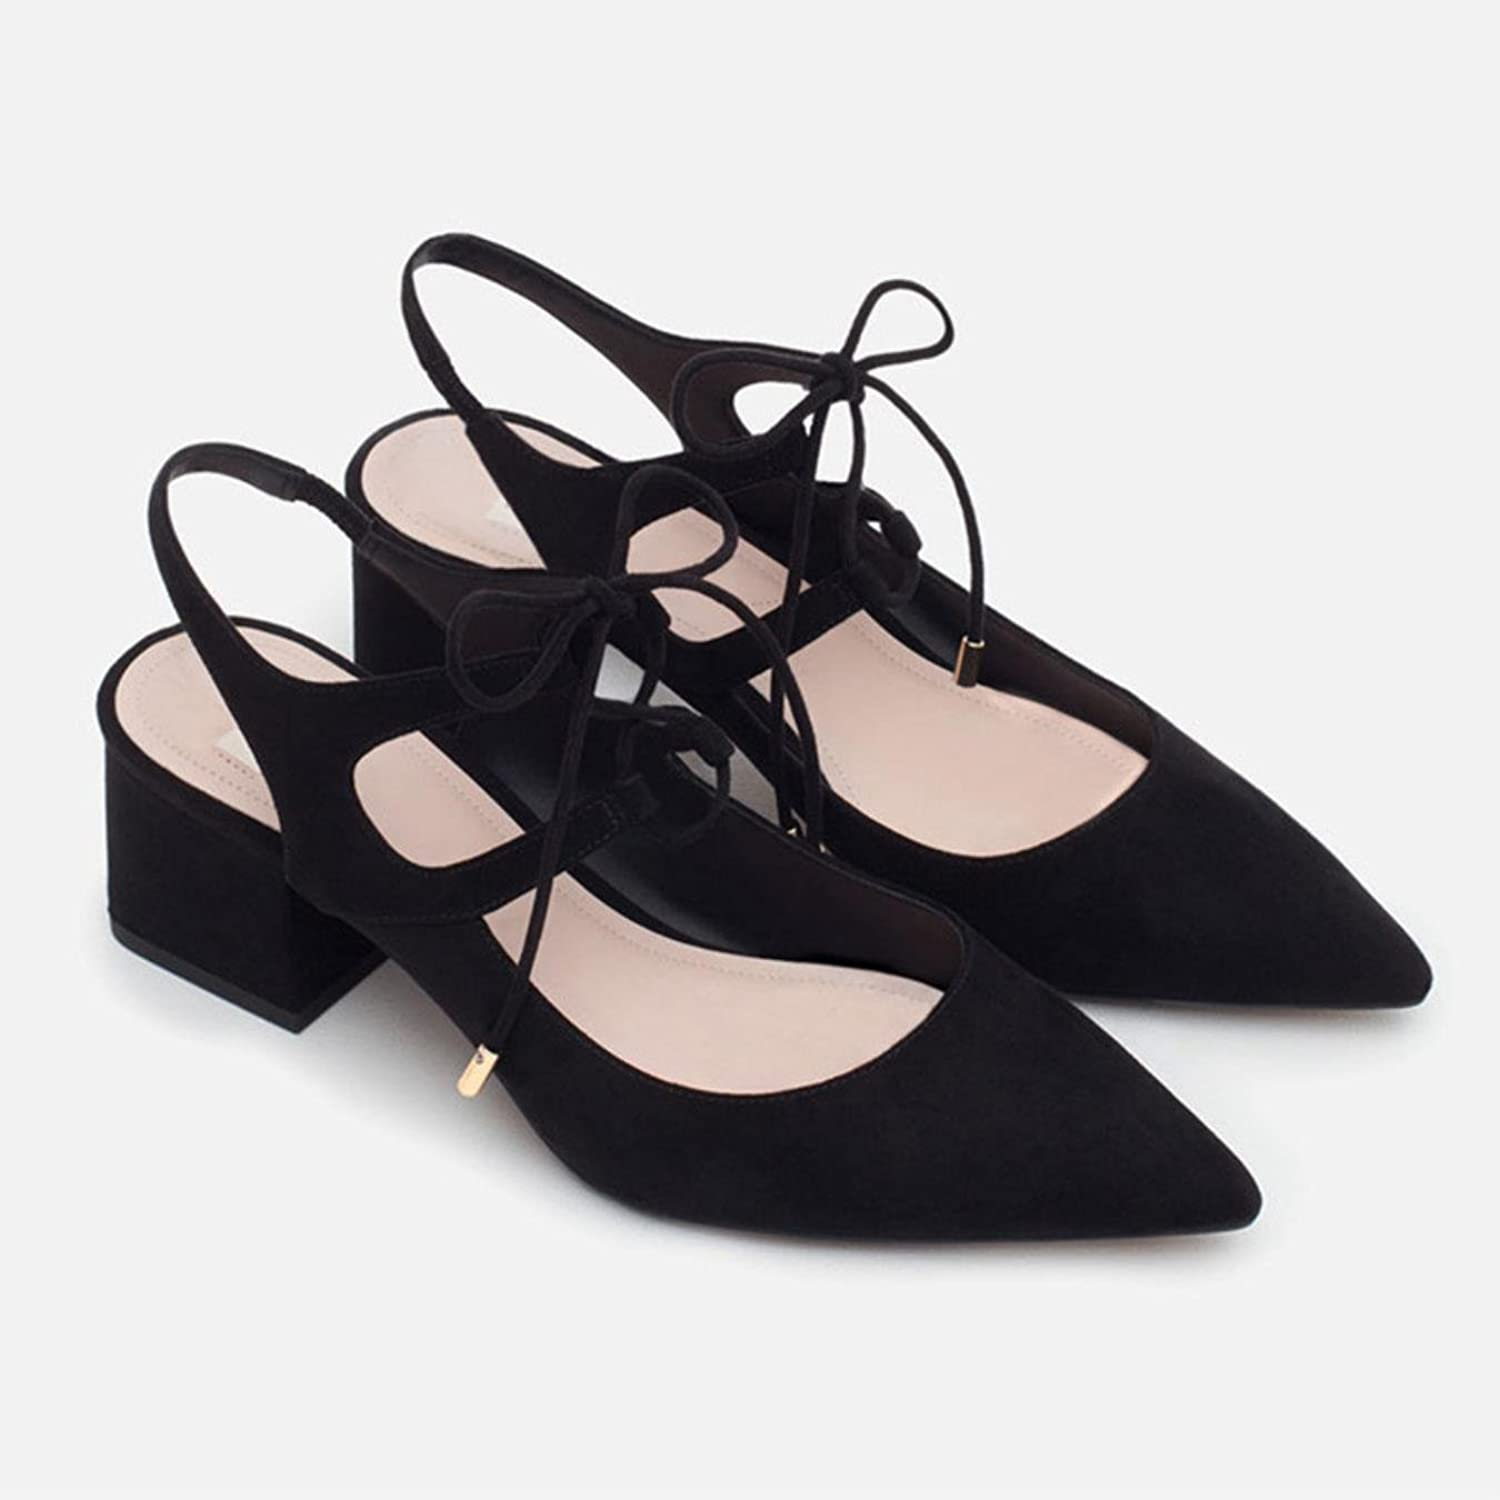 Woman Lace Up 6 CM Mid Heels Summer Pumps Pointed Toe Women Office shoes